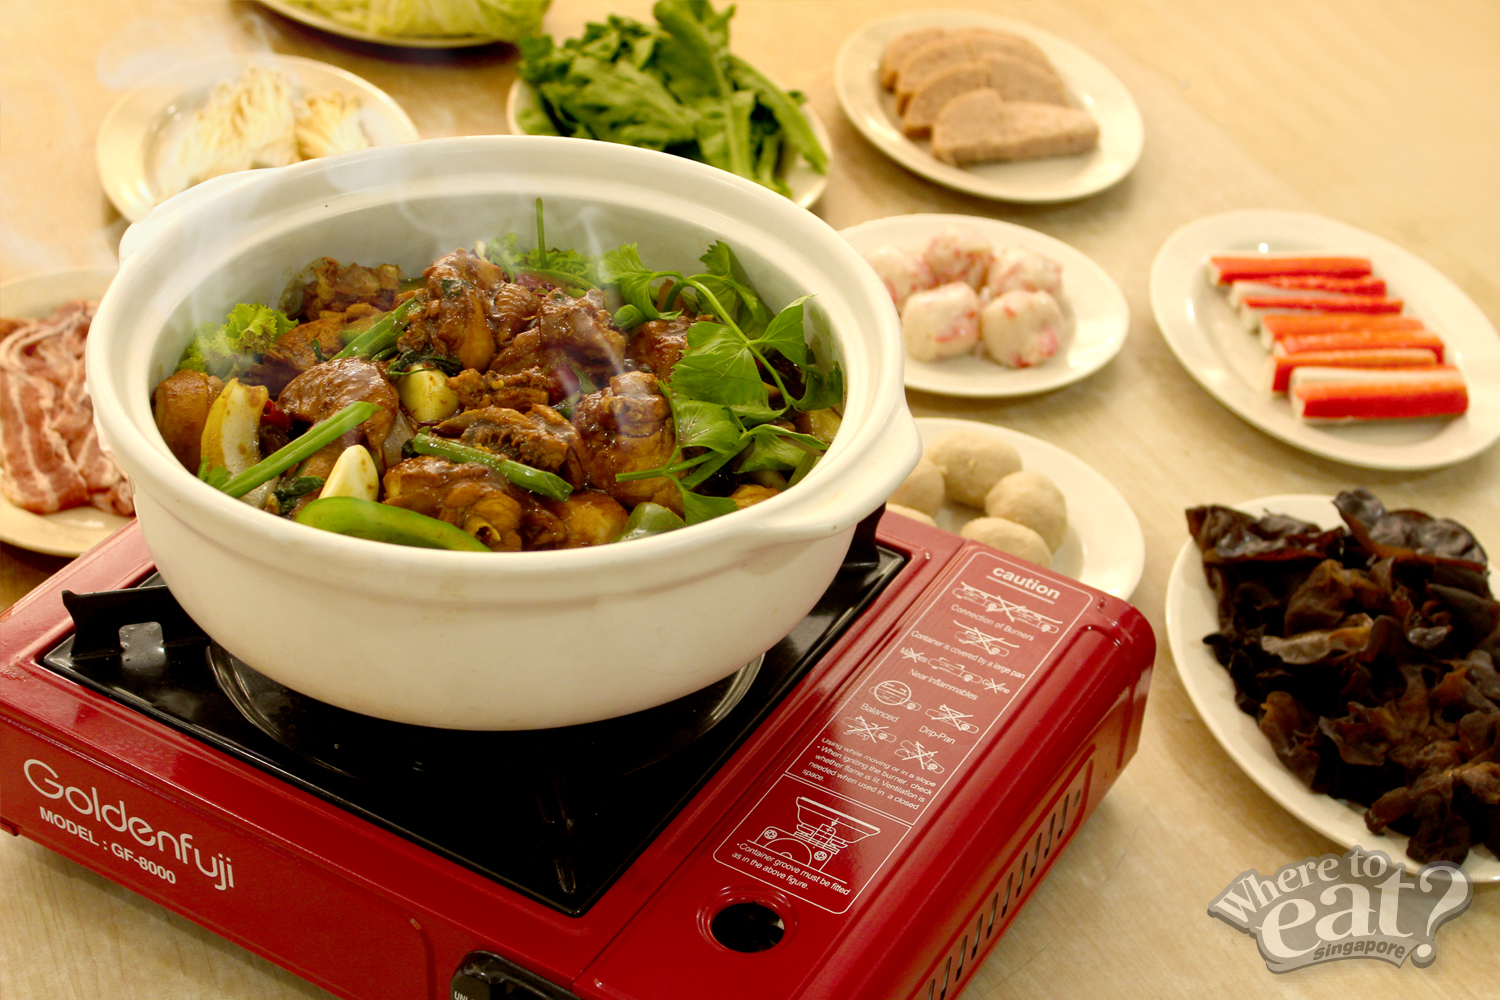 Ah Boy Chicken Pot (Ah Boy 鸡公煲)